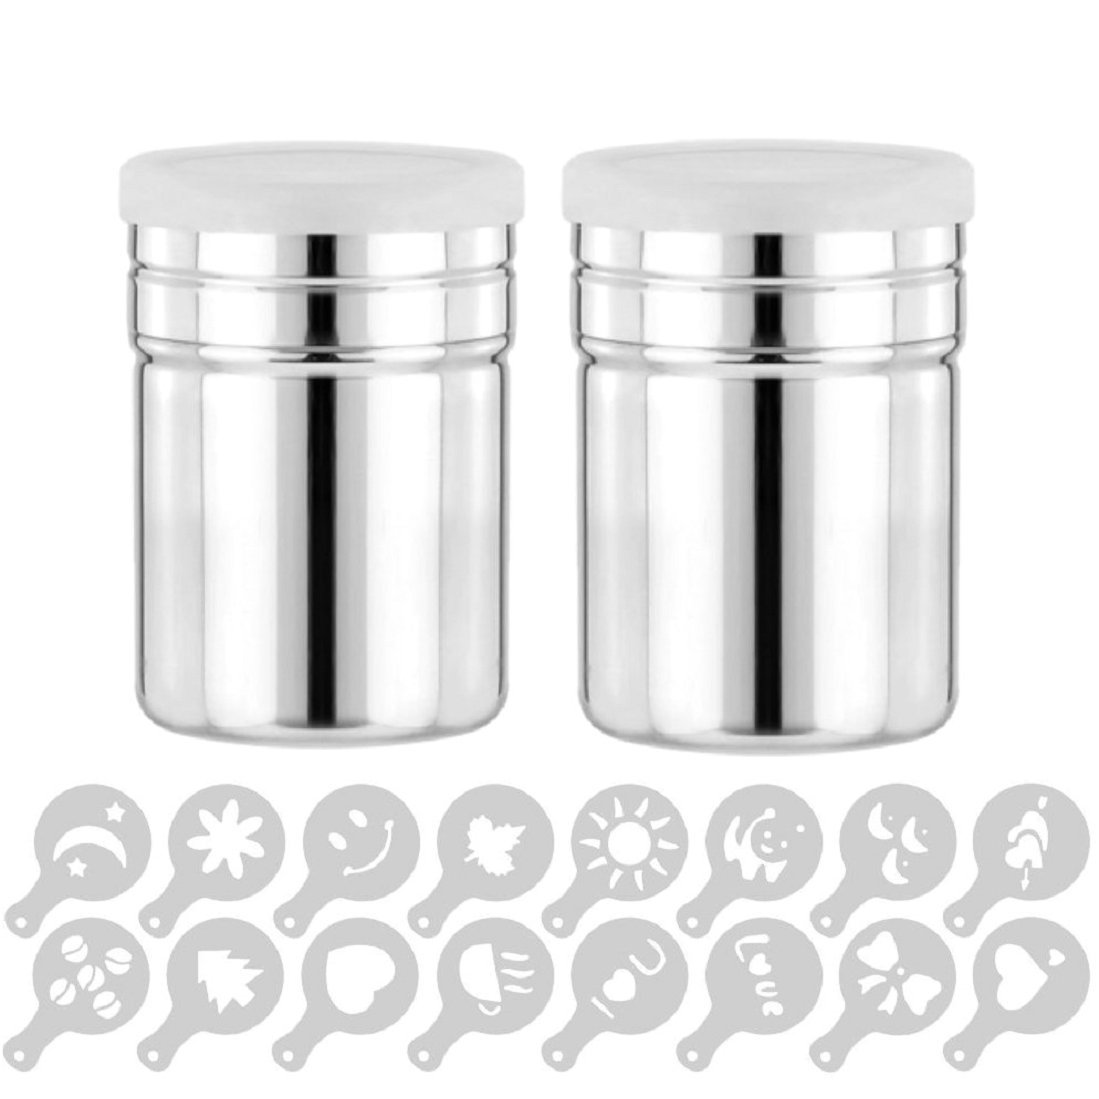 GuDoQi 2 Pieces Coffee Shaker Duster 304 Stainless Steel Icing Sugar Cocoa Powder Shaker Sifter with 16 Pieces Coffee Decorating Stencils Fine Mesh for Latte Art QBY